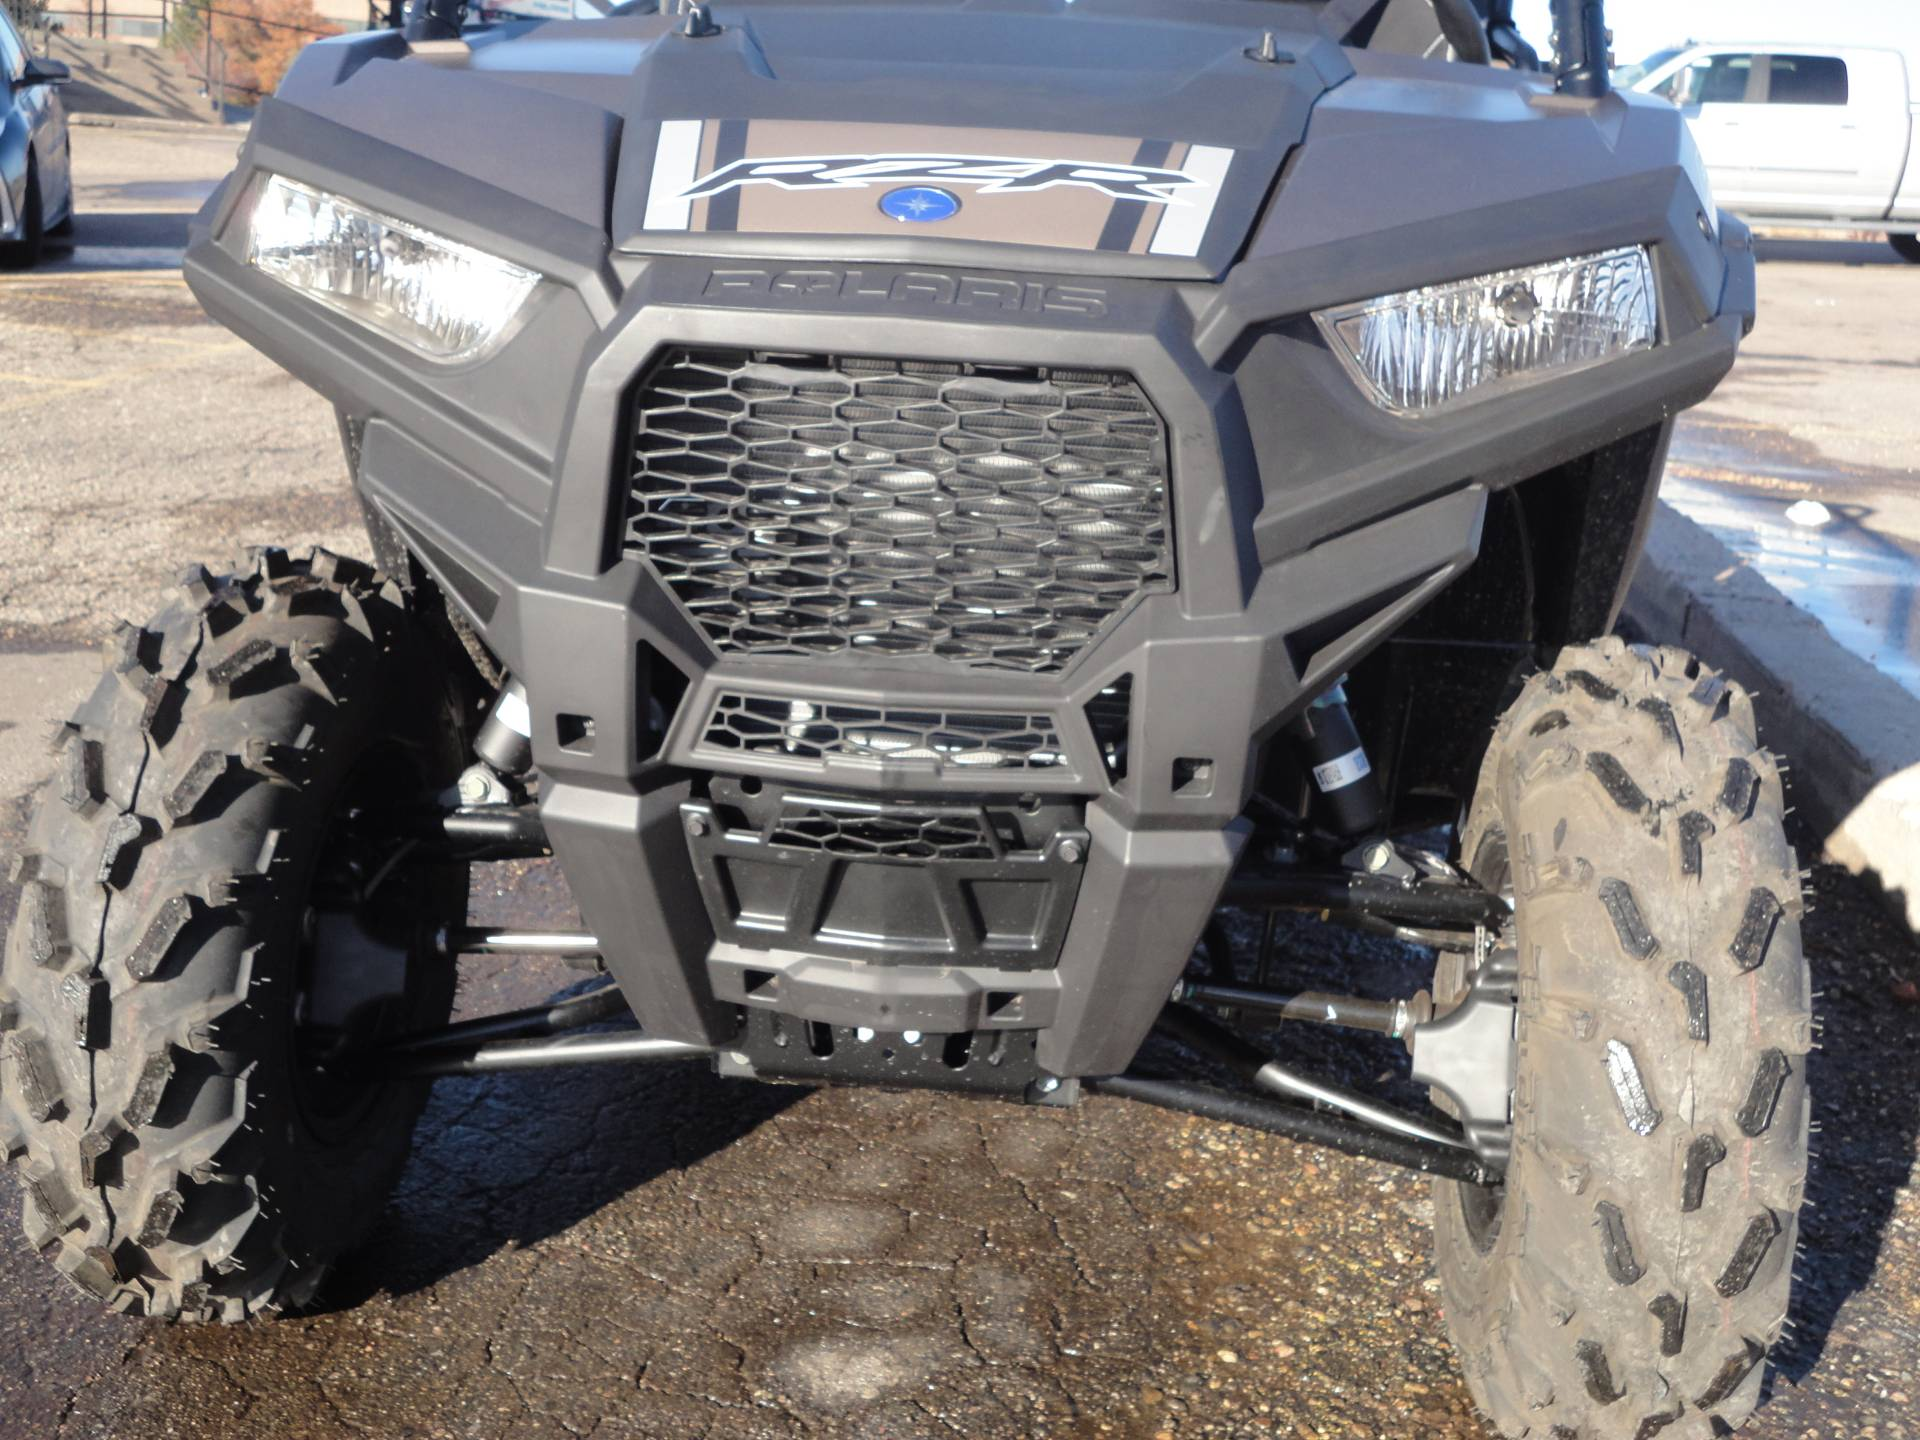 2020 Polaris RZR 900 Premium in Denver, Colorado - Photo 3